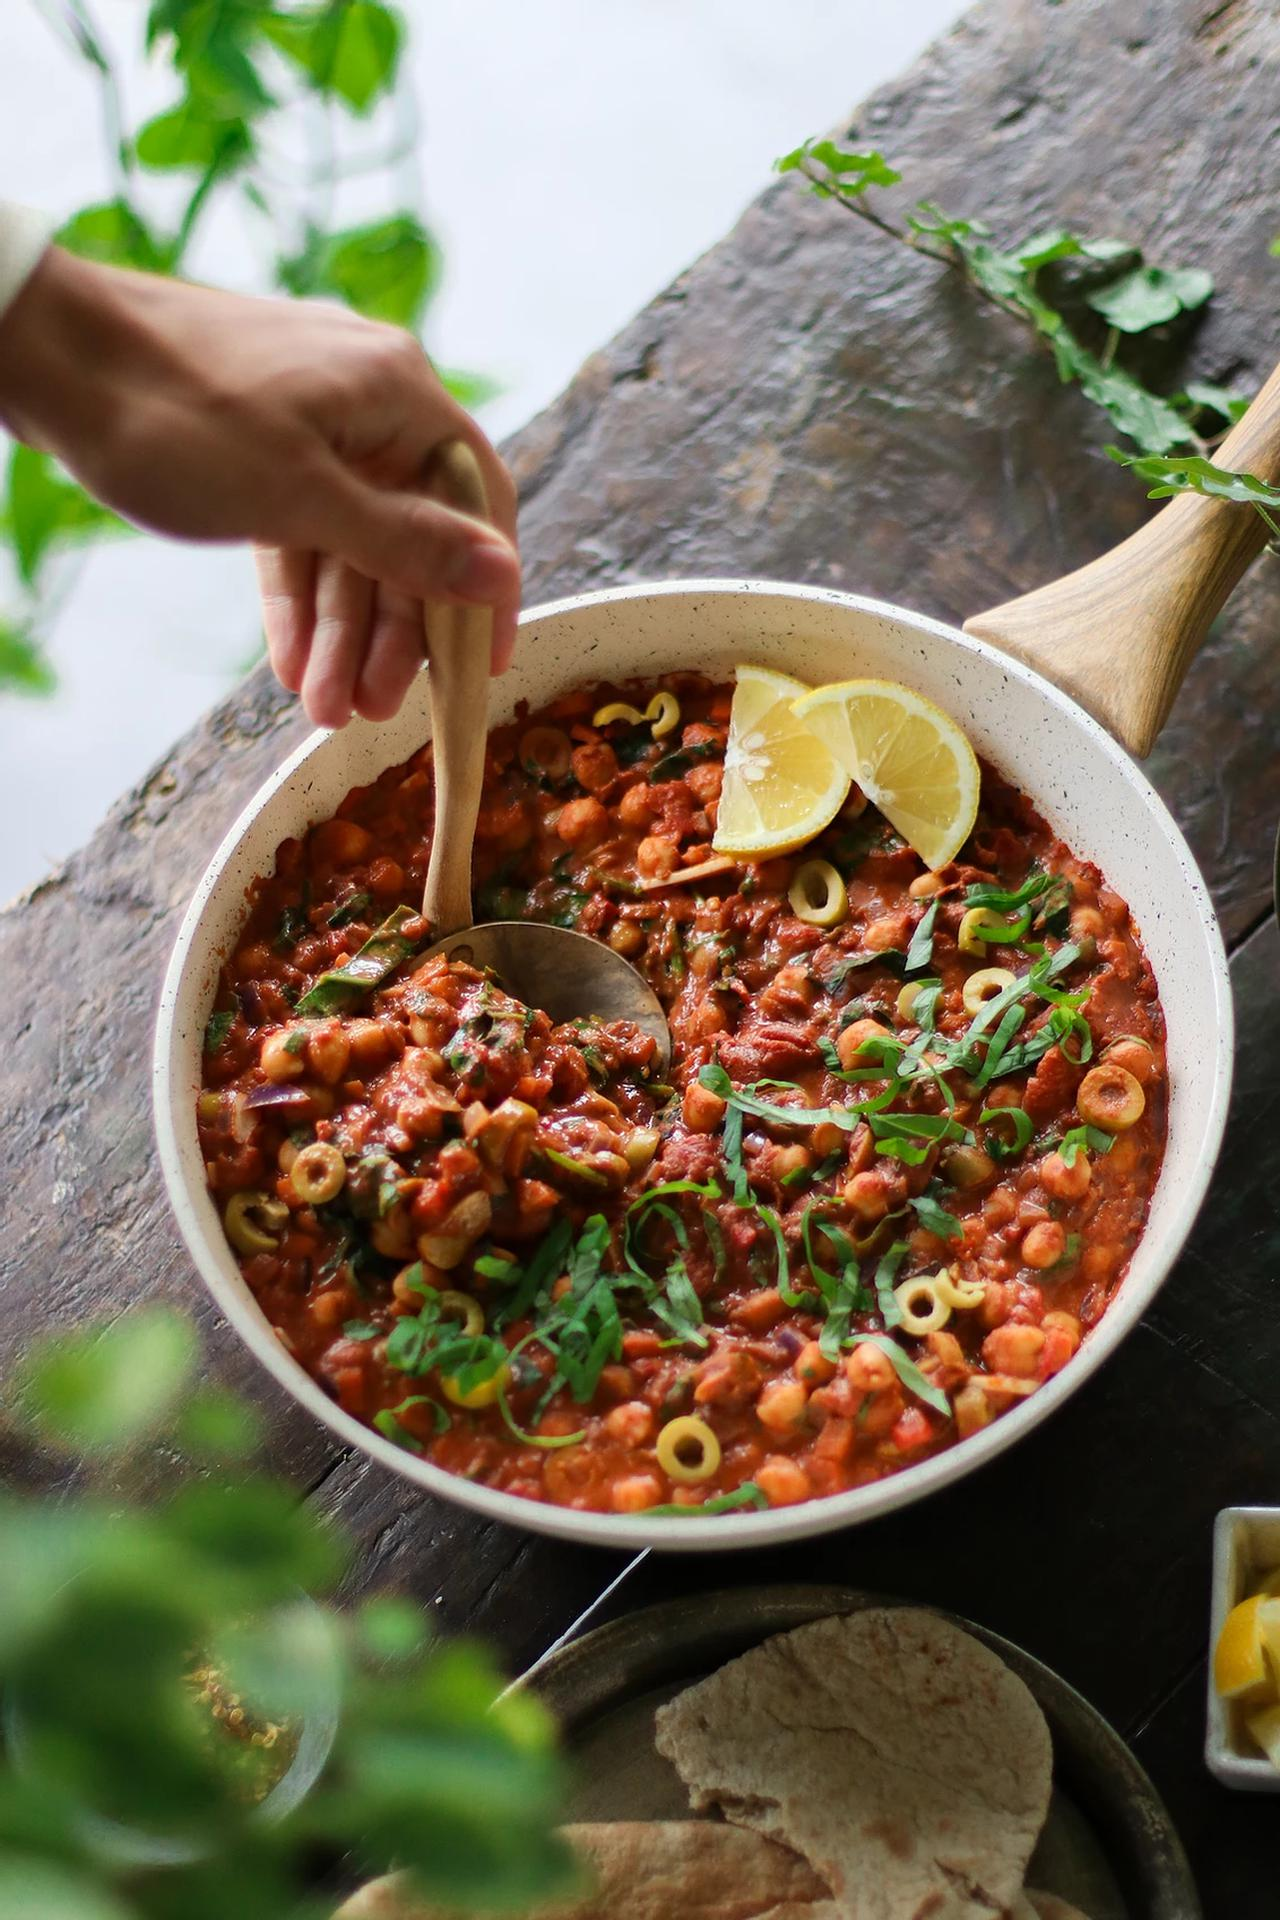 Main image of One-Pot Tomato & Chickpea Stew